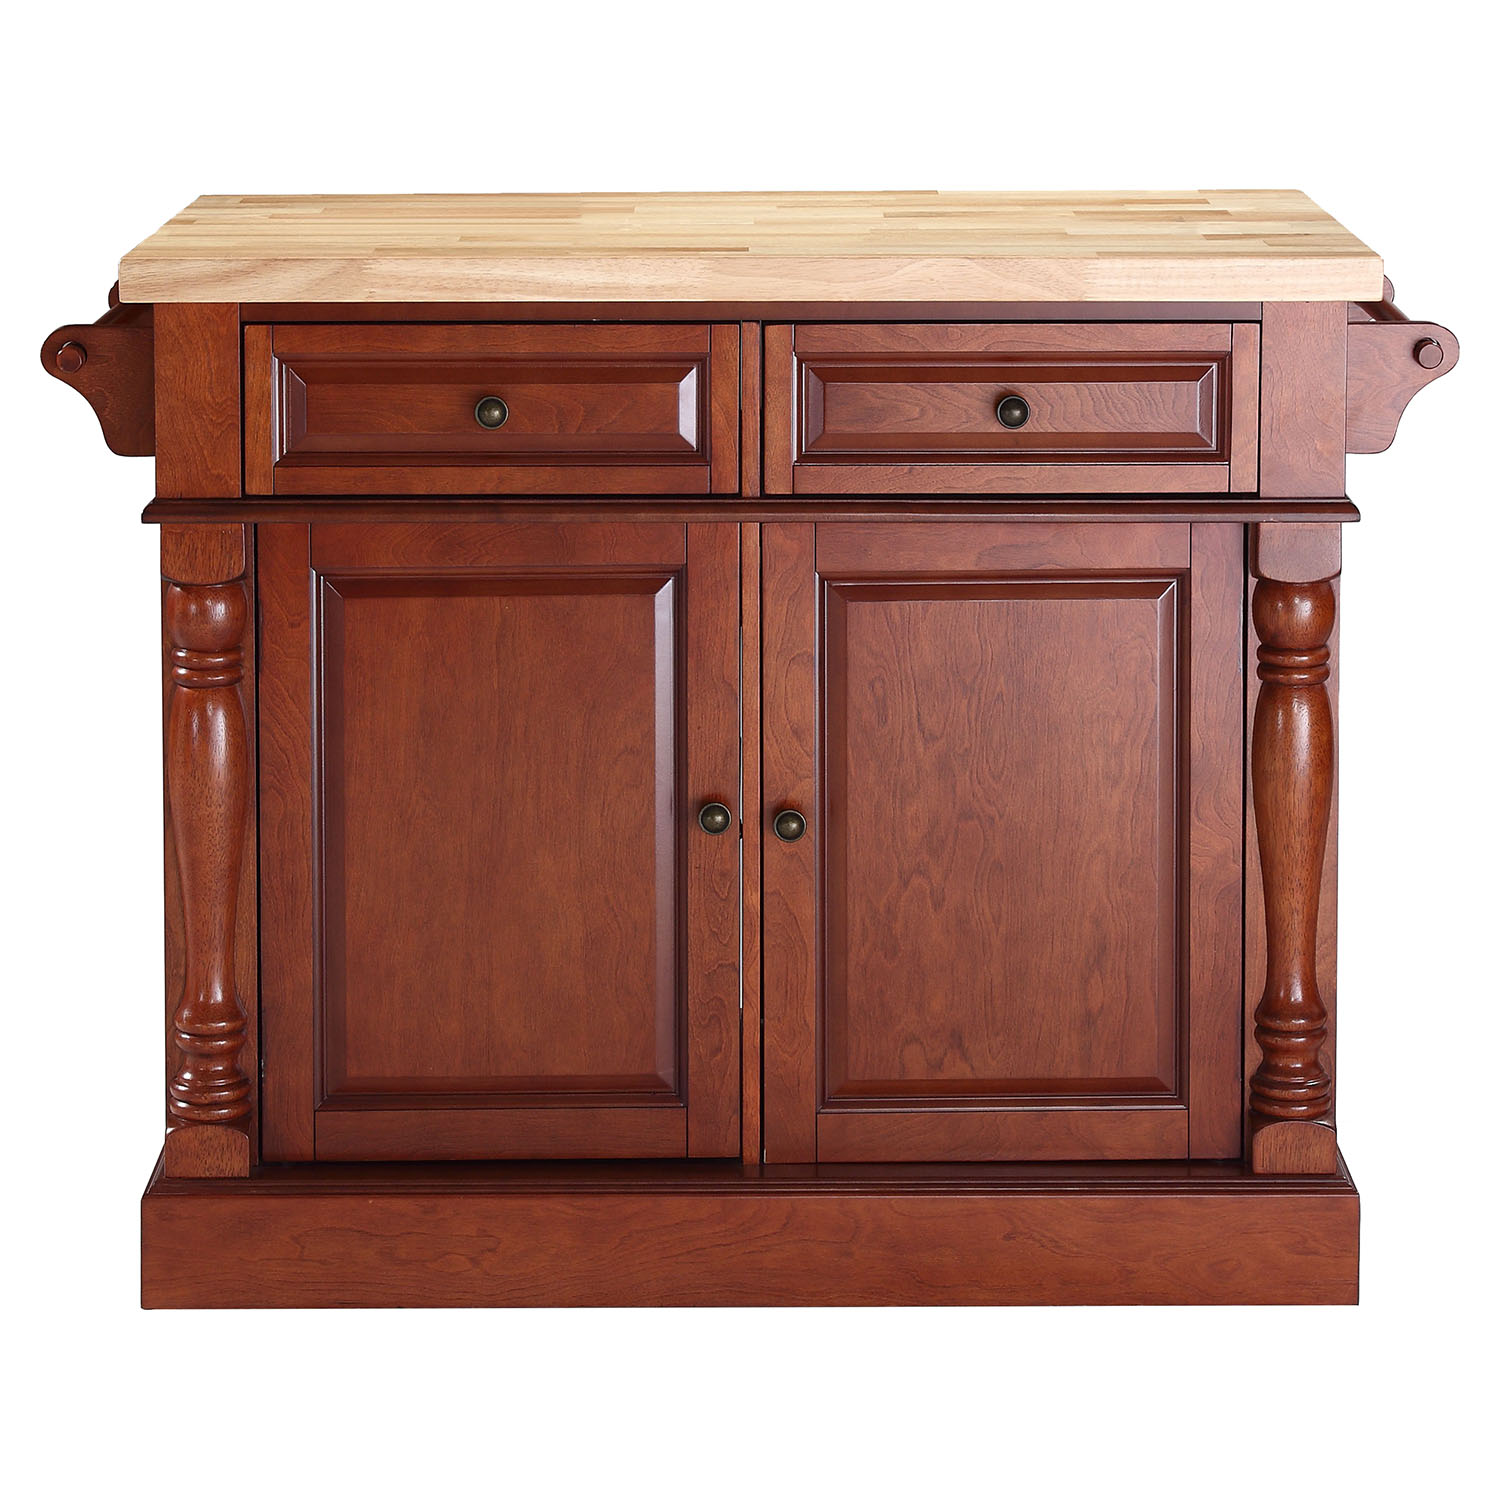 Haleakala Kitchen Island With Butcher Block Top : Butcher Block Top Kitchen Island - Classic Cherry DCG Stores